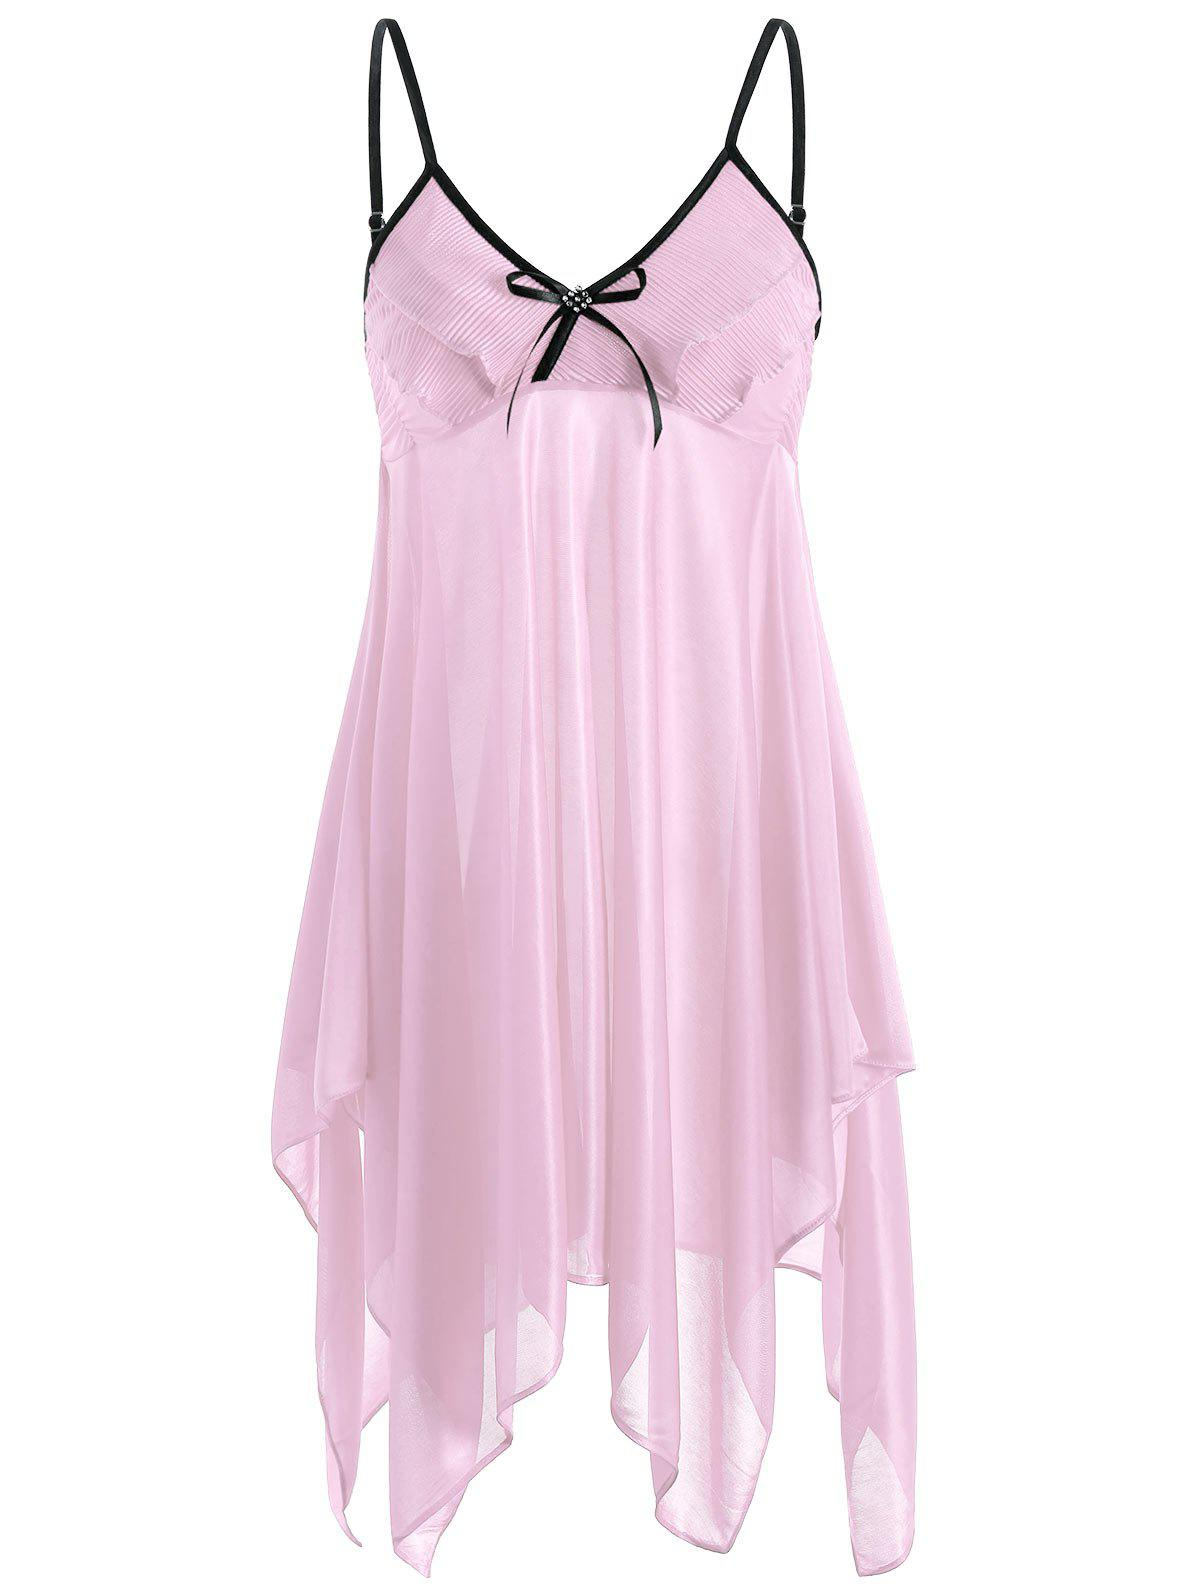 Handkerchief Ruffles Cami Babydoll - PINK ONE SIZE